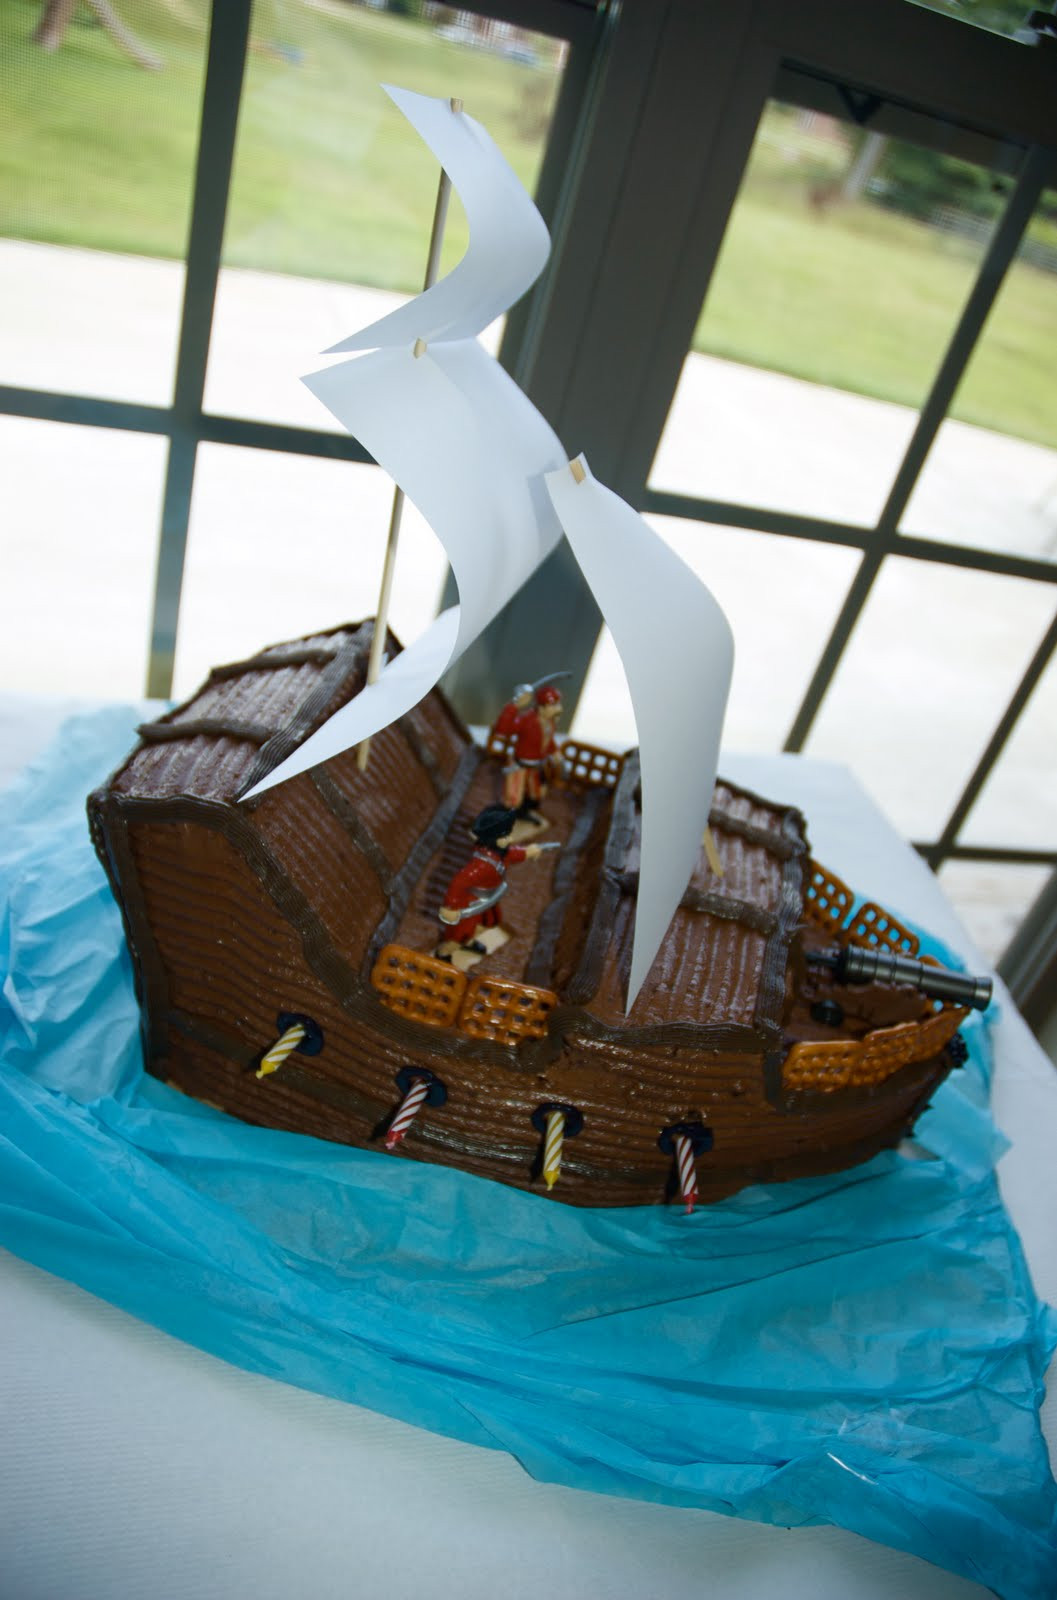 Best ideas about Ship Birthday Cake . Save or Pin Living Frugally without being called a Cheapskate Pirate Now.